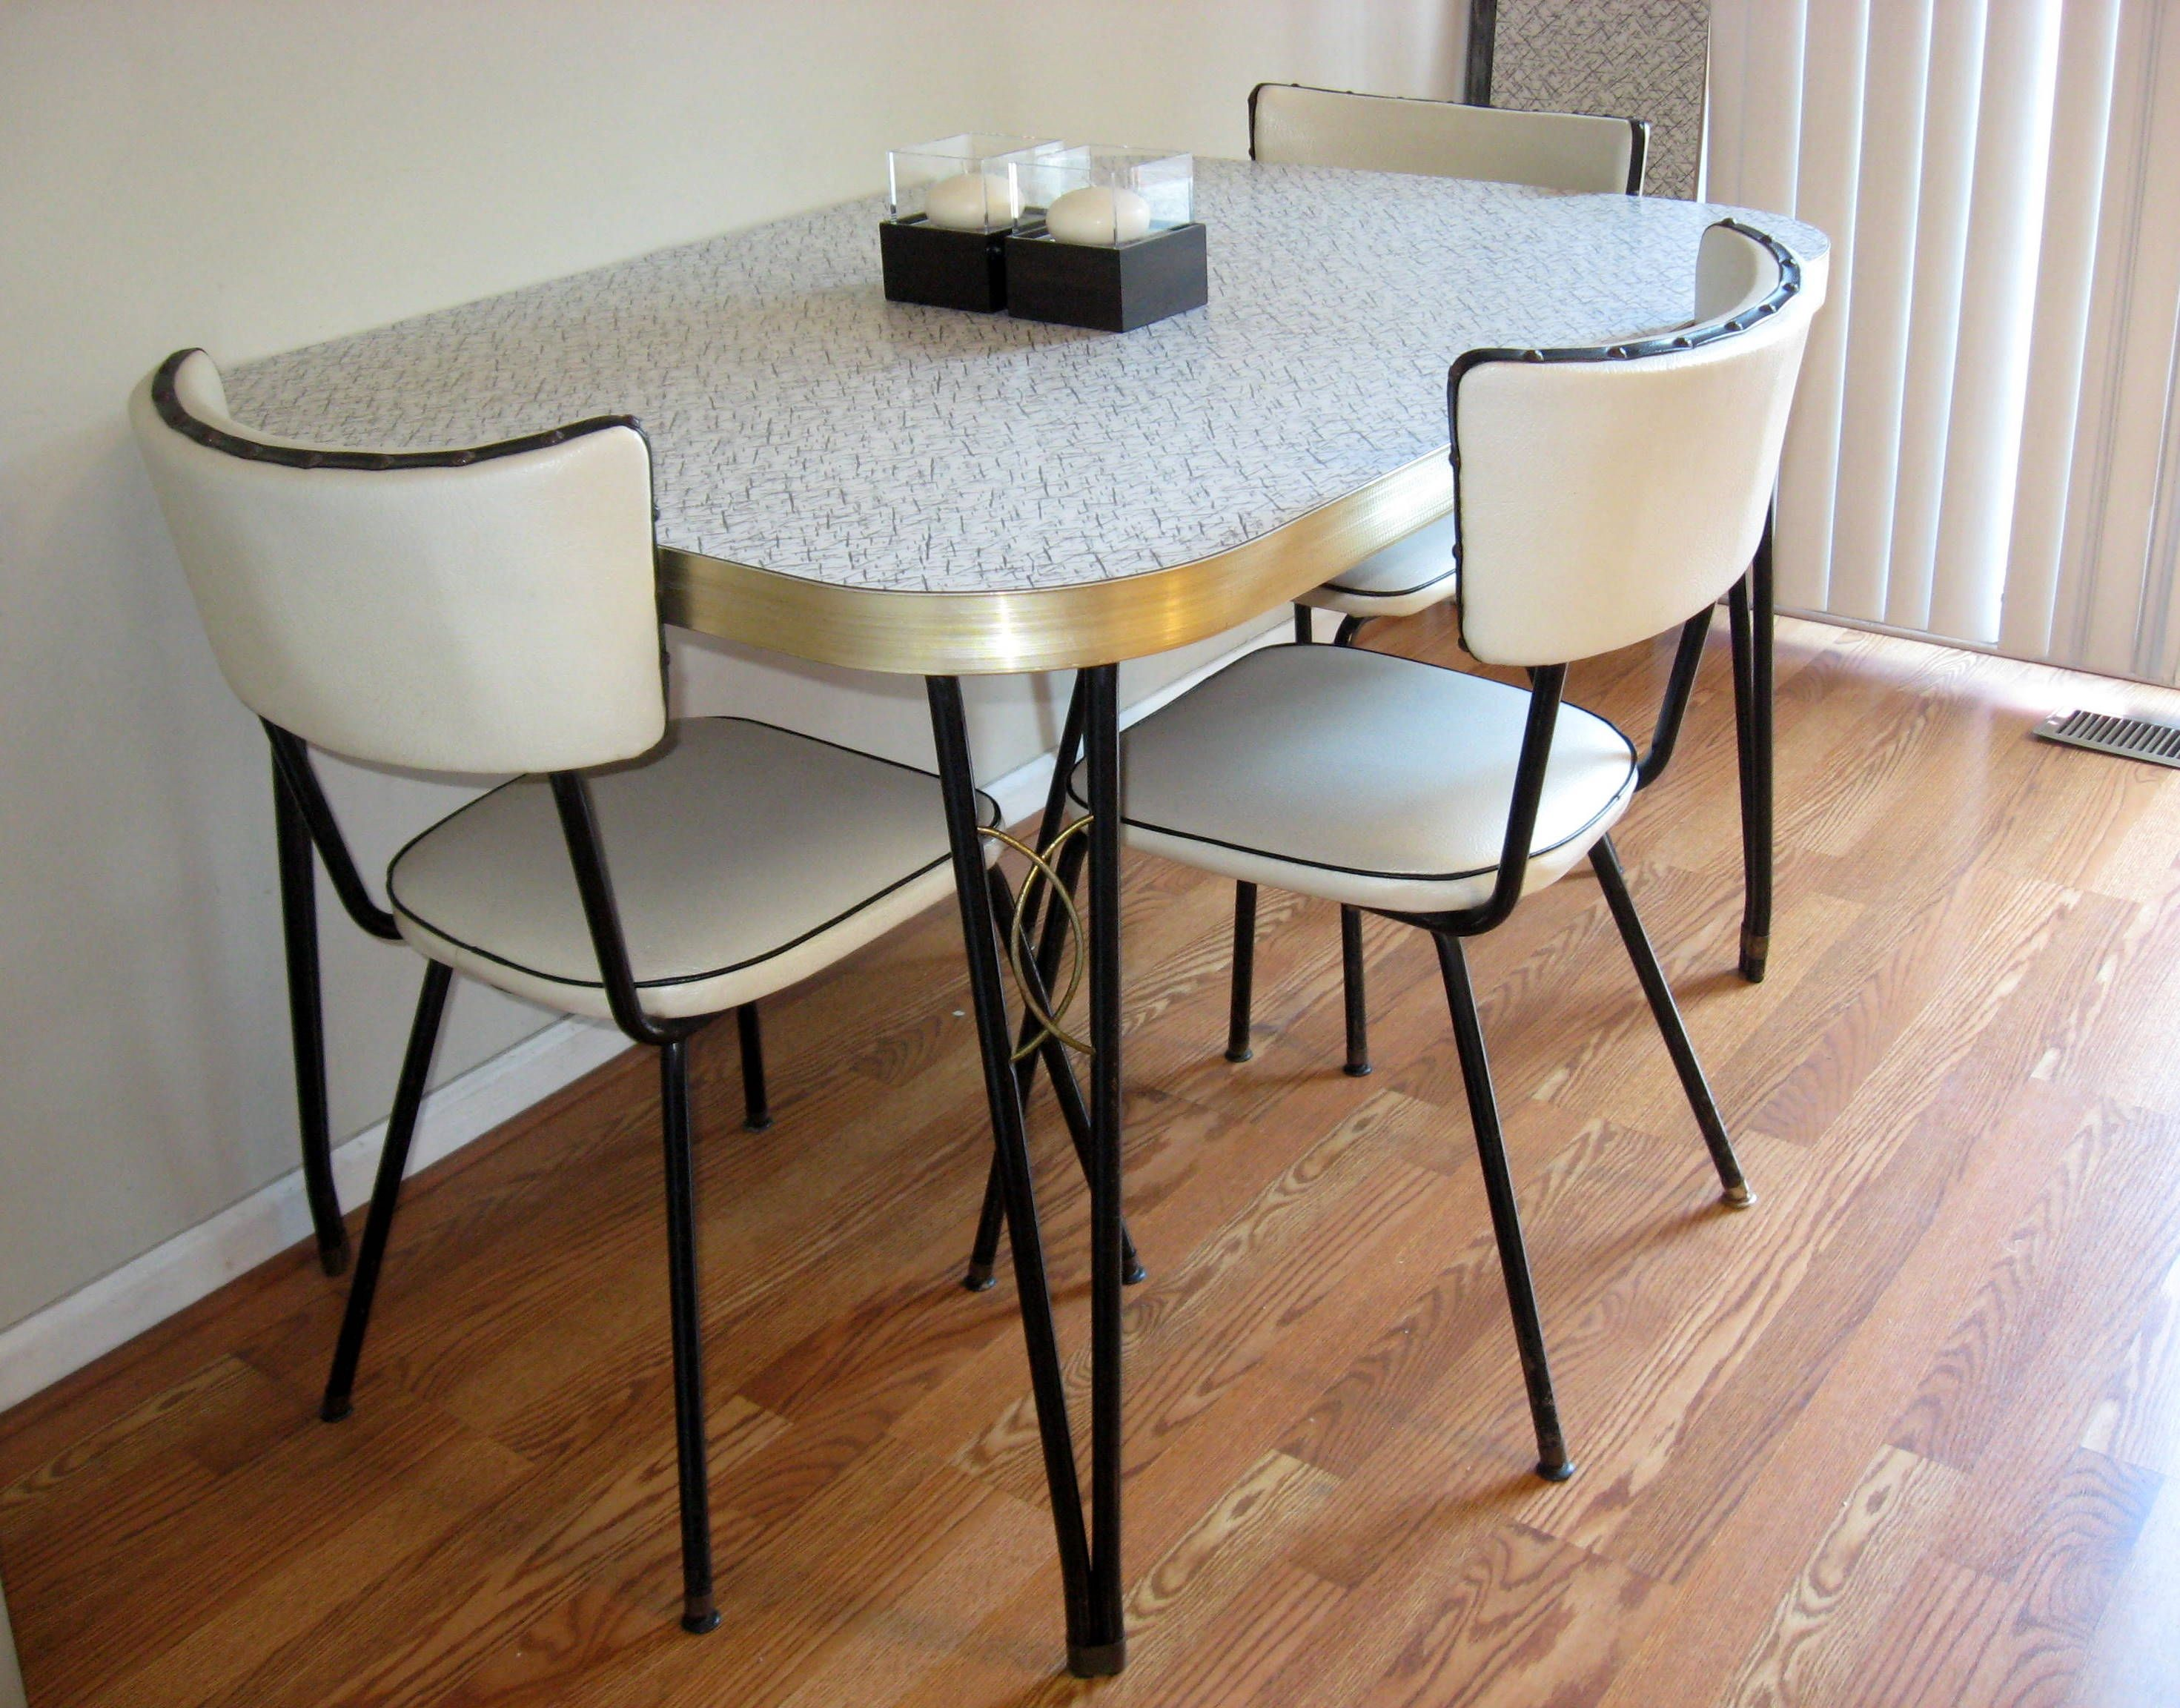 Attachment Retro Kitchen Table And Chairs Set 982 ...